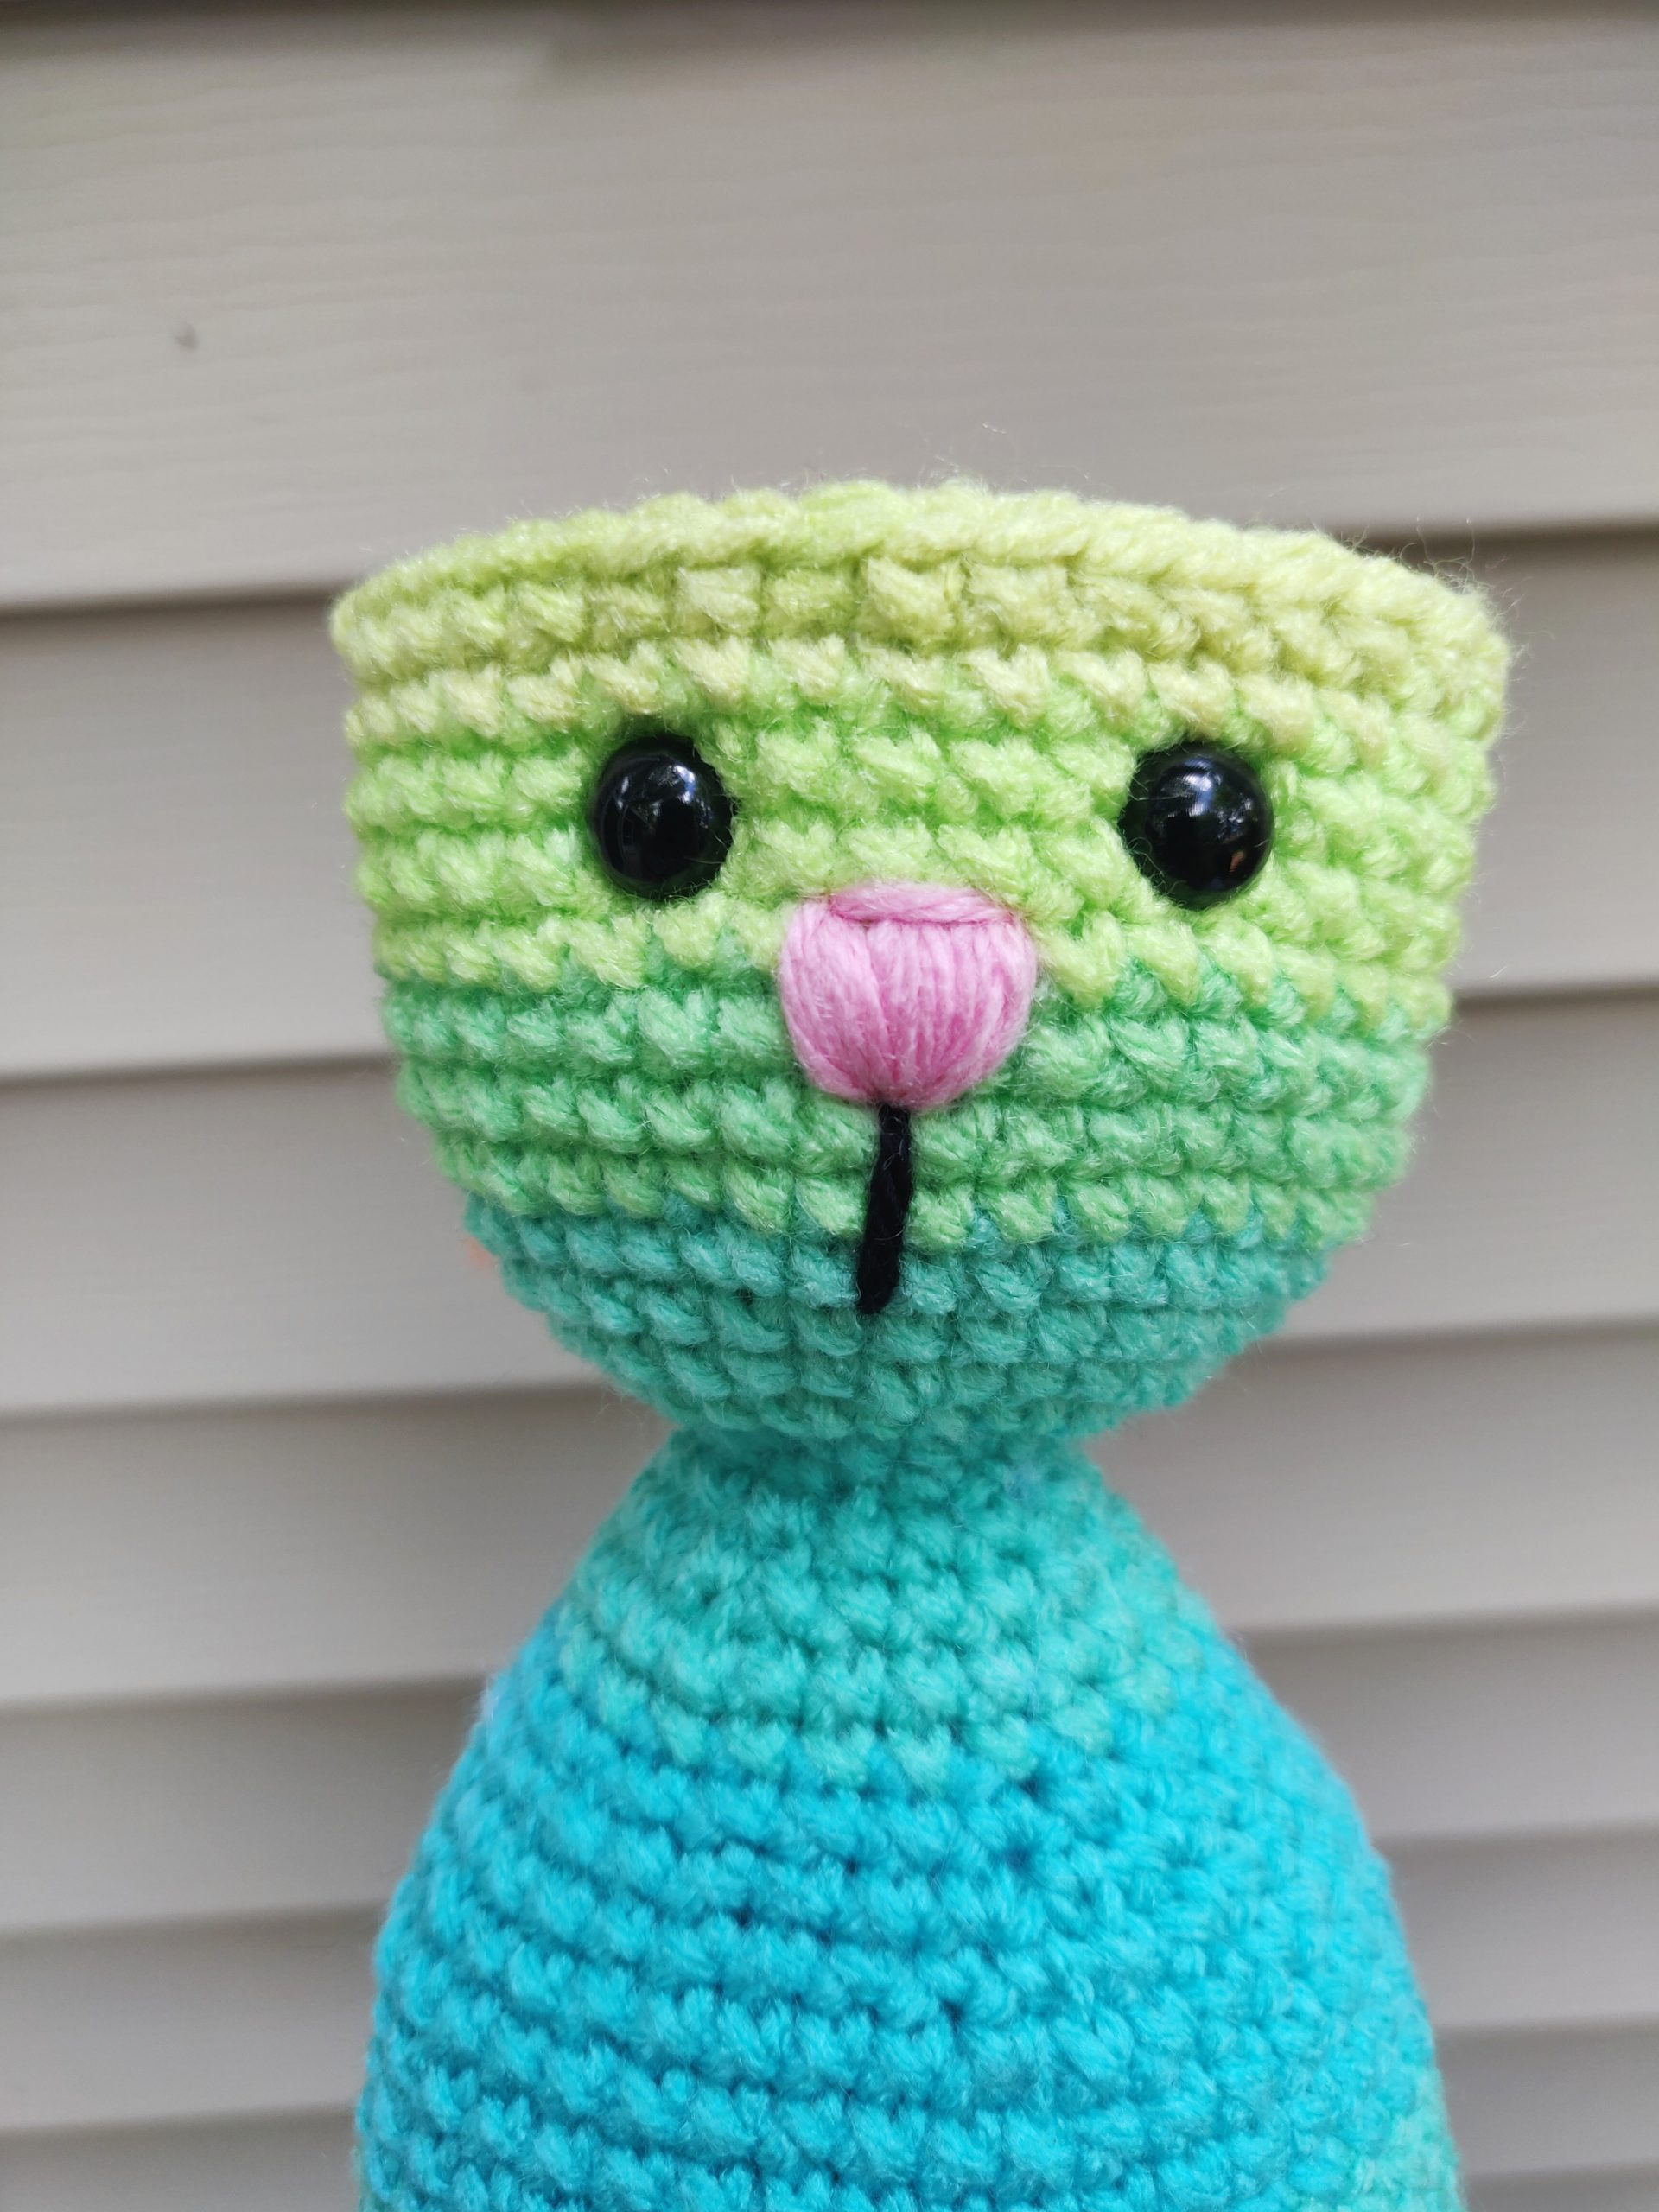 Crochet rainbow yarn, two black safety eyes and pink nose.